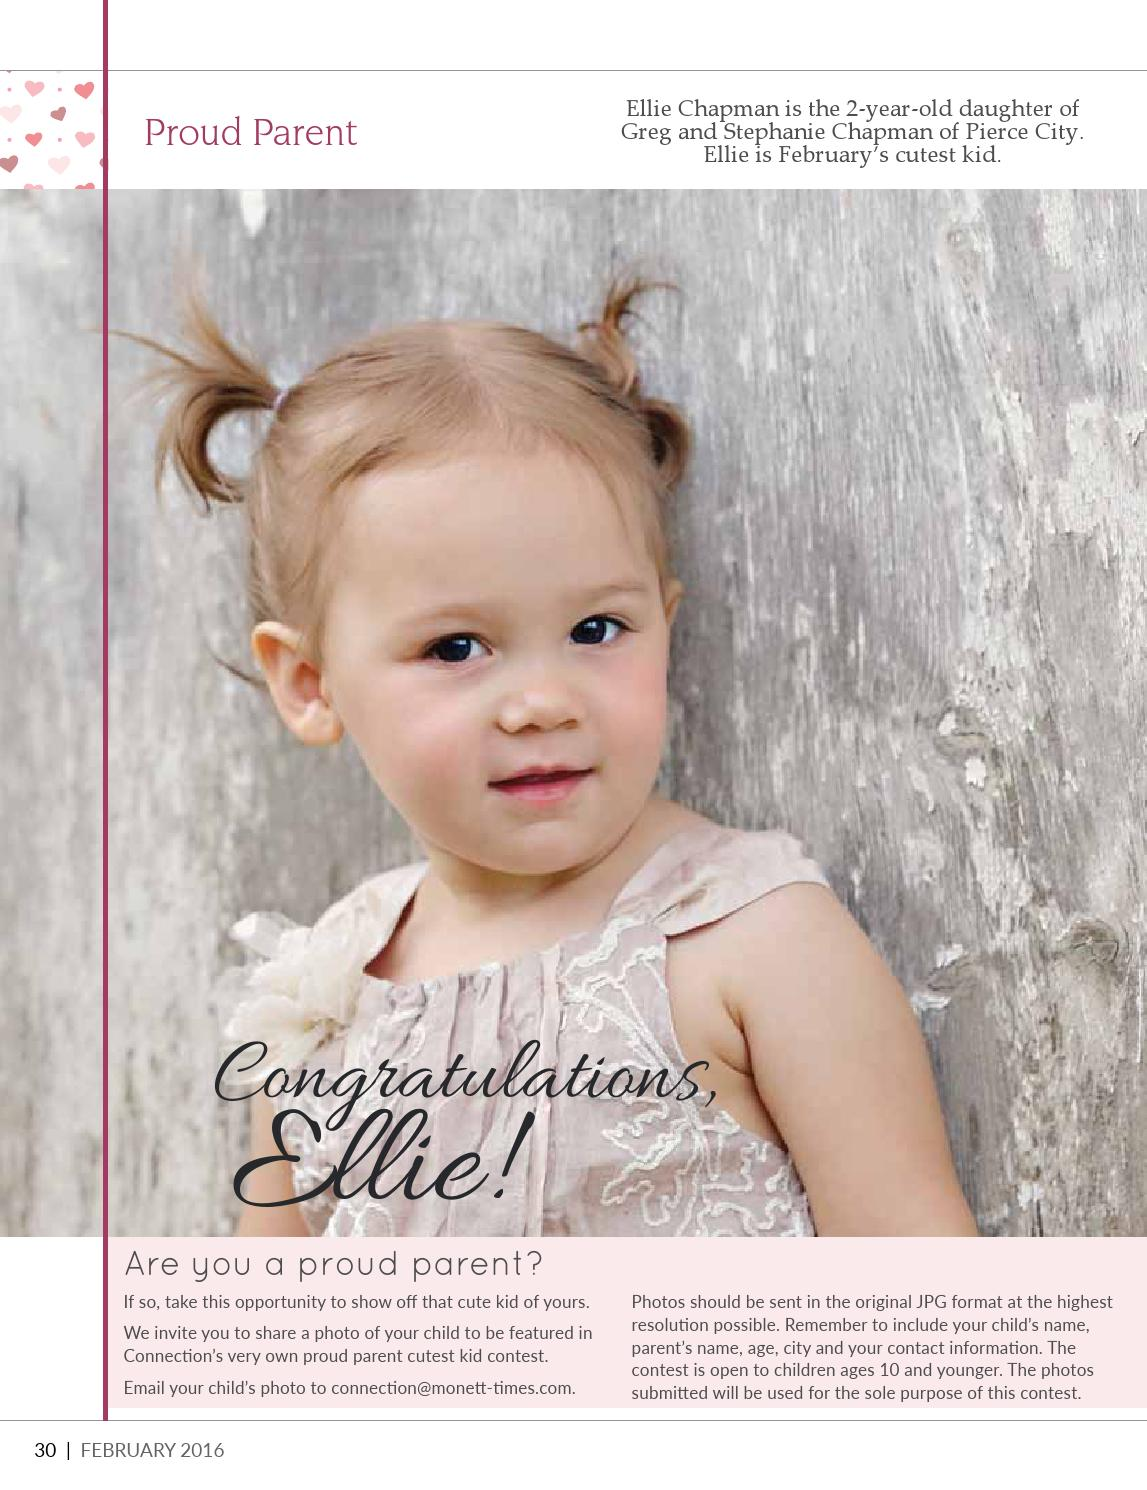 This kid photo contest is the Parent Media Group and is one of the only international baby contests that is judged by talent scouts, casting agents and other top industry pros and celebrities. The Cute Kid Photo Contest is well run and they claim that all of the pictures submitted are .